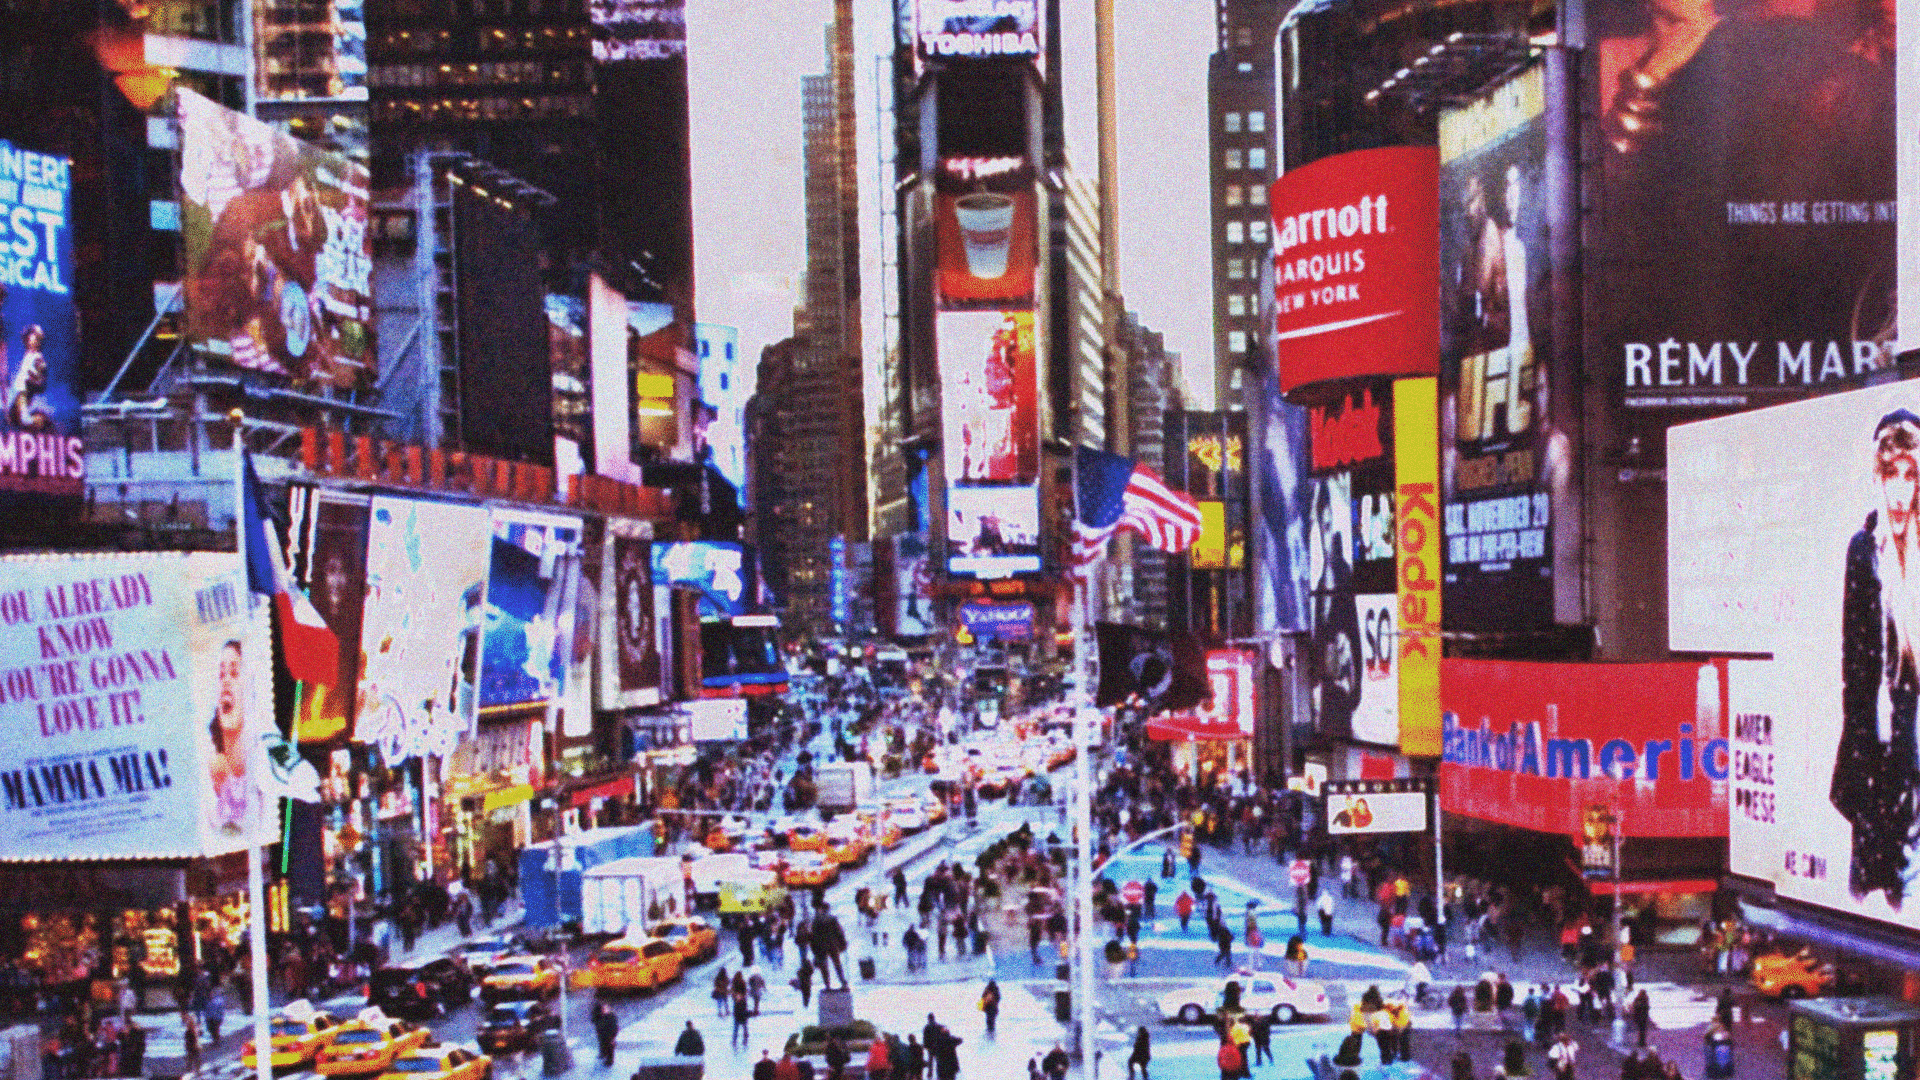 Times Square in New York City, 1990s.